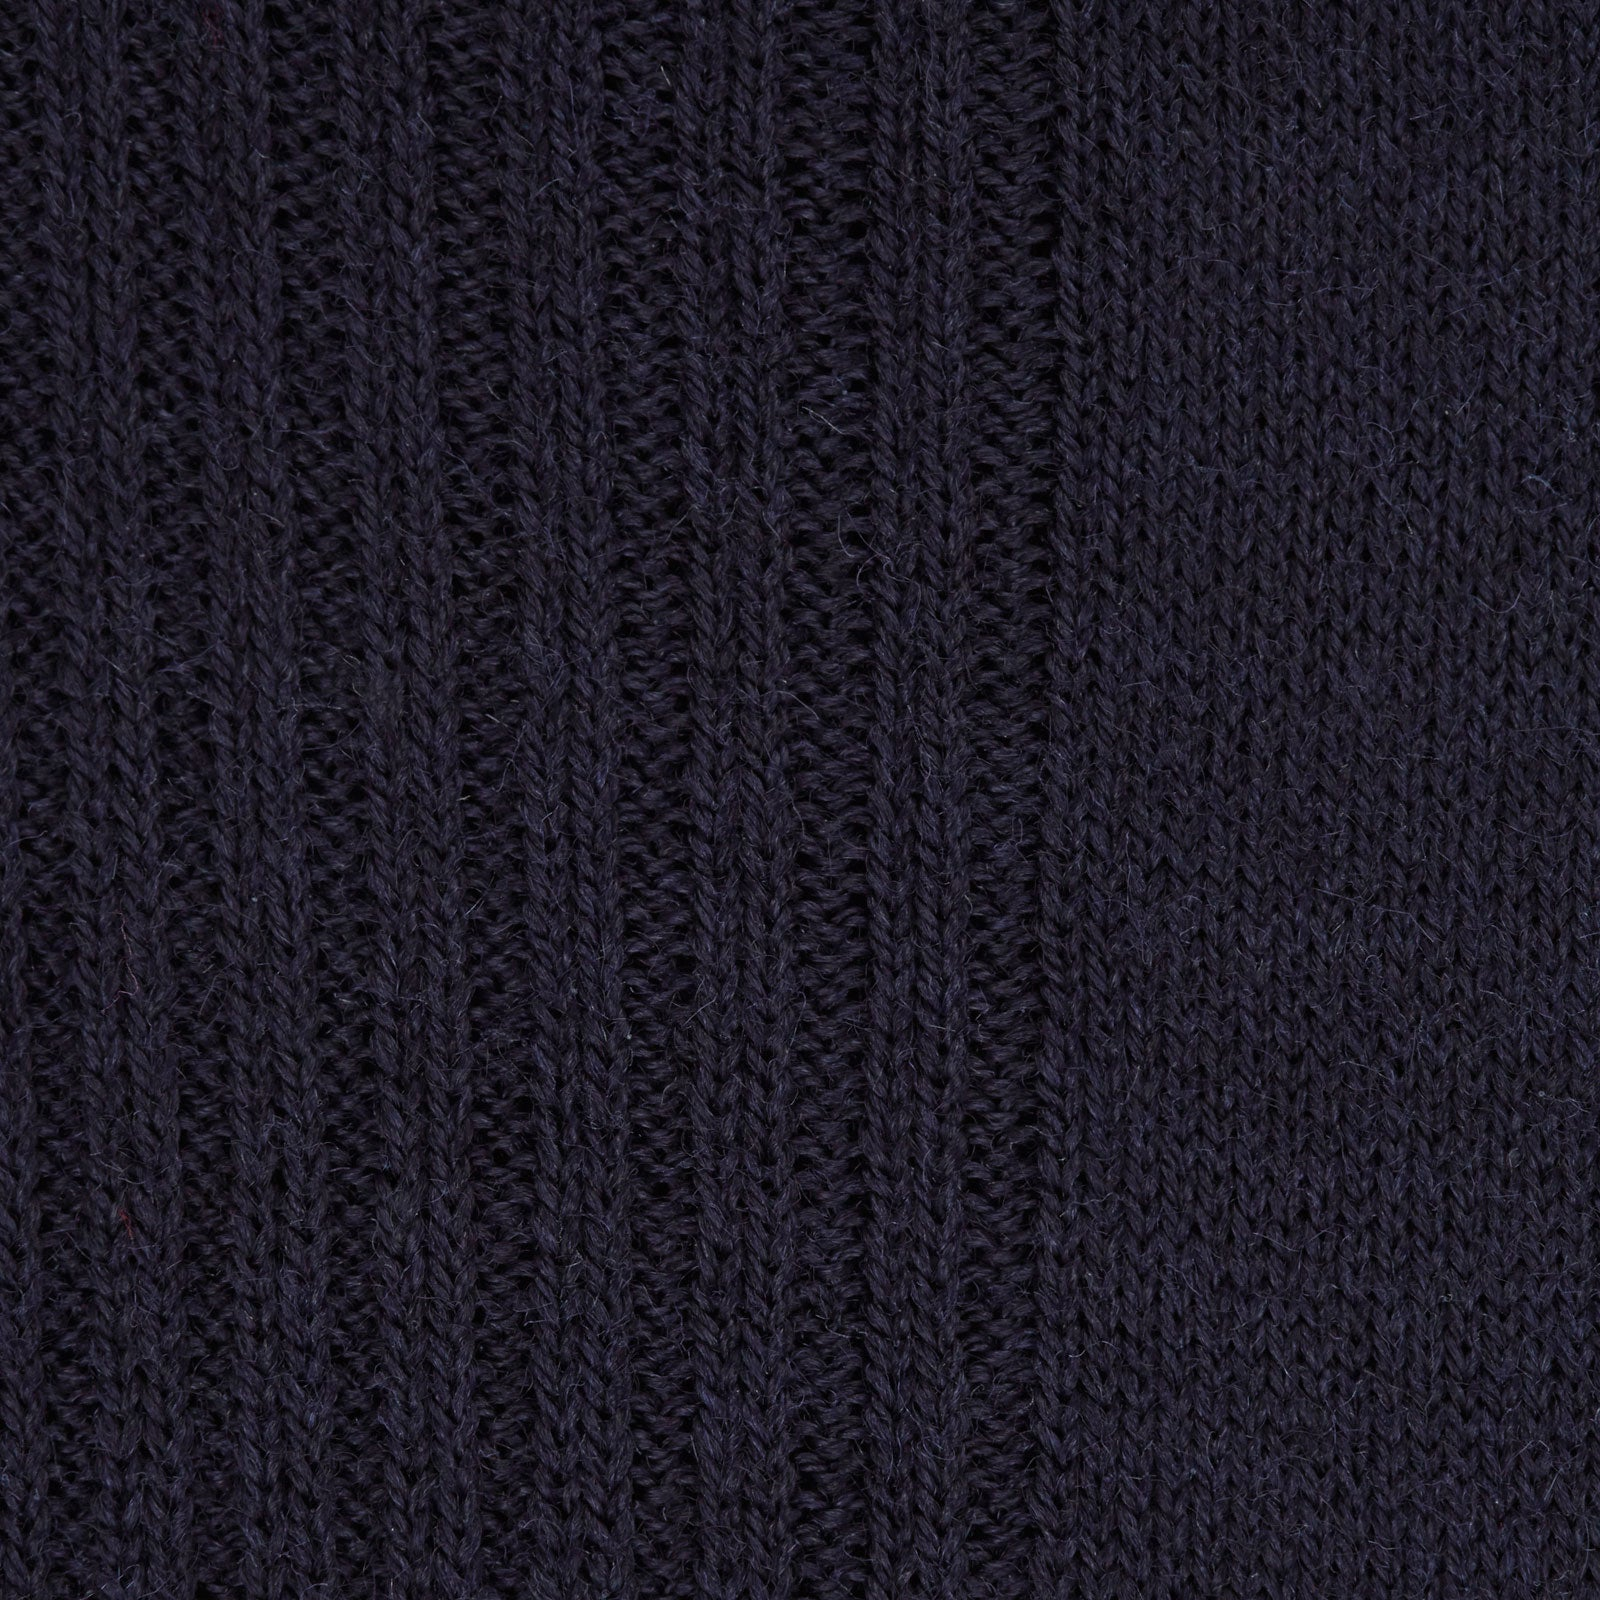 Deep Navy Mid-Length Merino Wool Socks